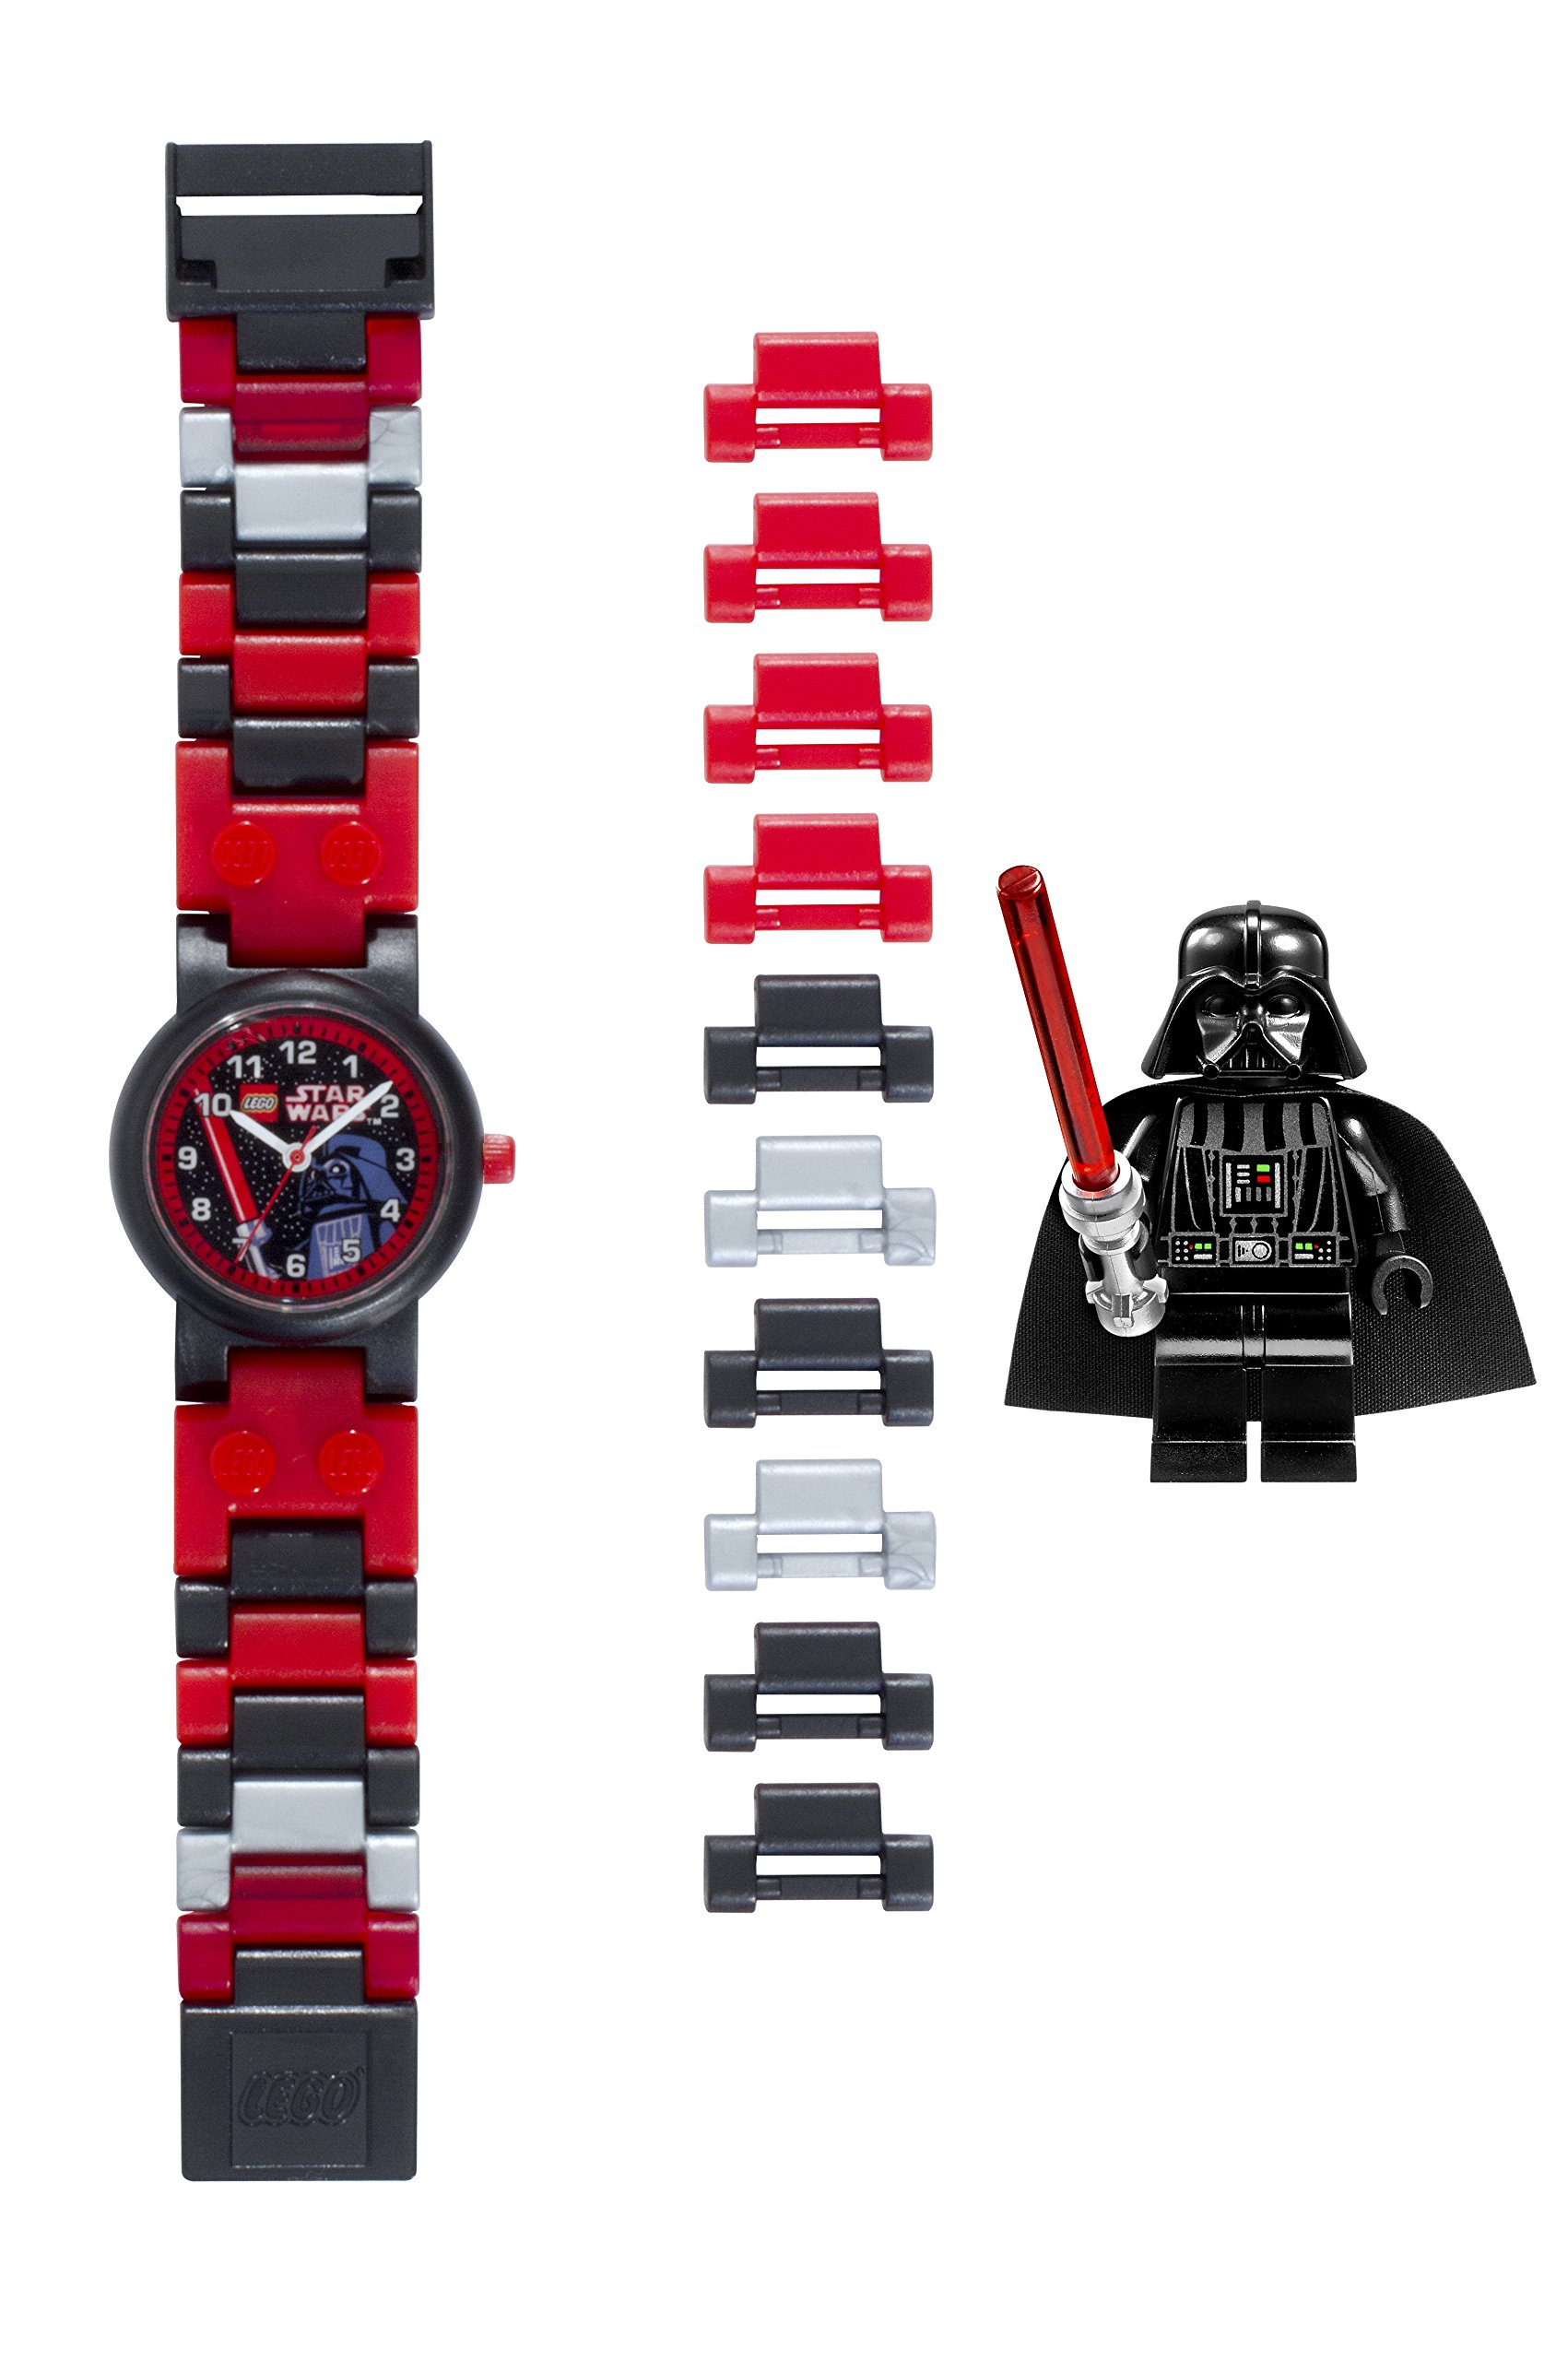 LEGO Star Wars 8020301 Darth Vader Kids Buildable Watch with Link Bracelet and Minifigure | black/red | plastic | 25mm case diameter| analog quartz | boy girl | official by ClicTime